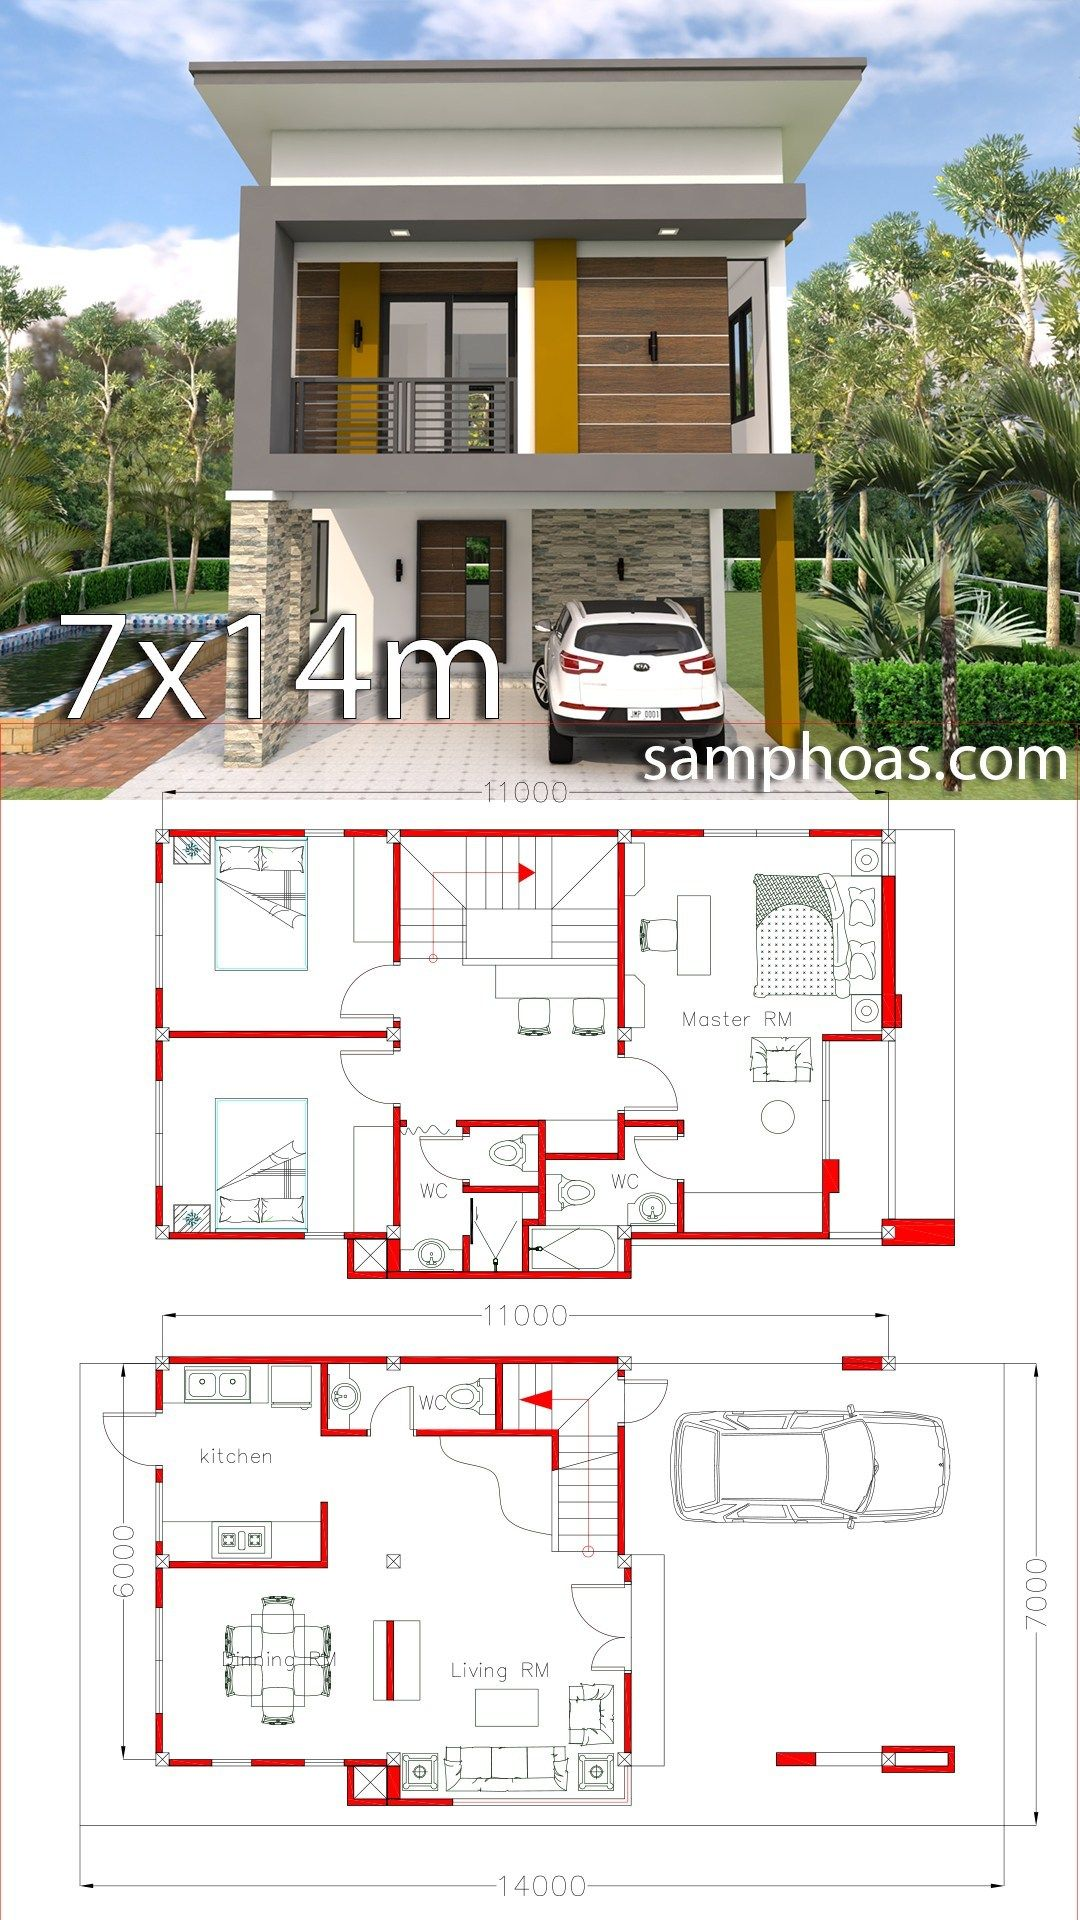 Small Home Design Plan 6x11m With 3 Bedrooms Samphoas Plansearch Small House Design Plans Tiny Modern House Plans Small House Design